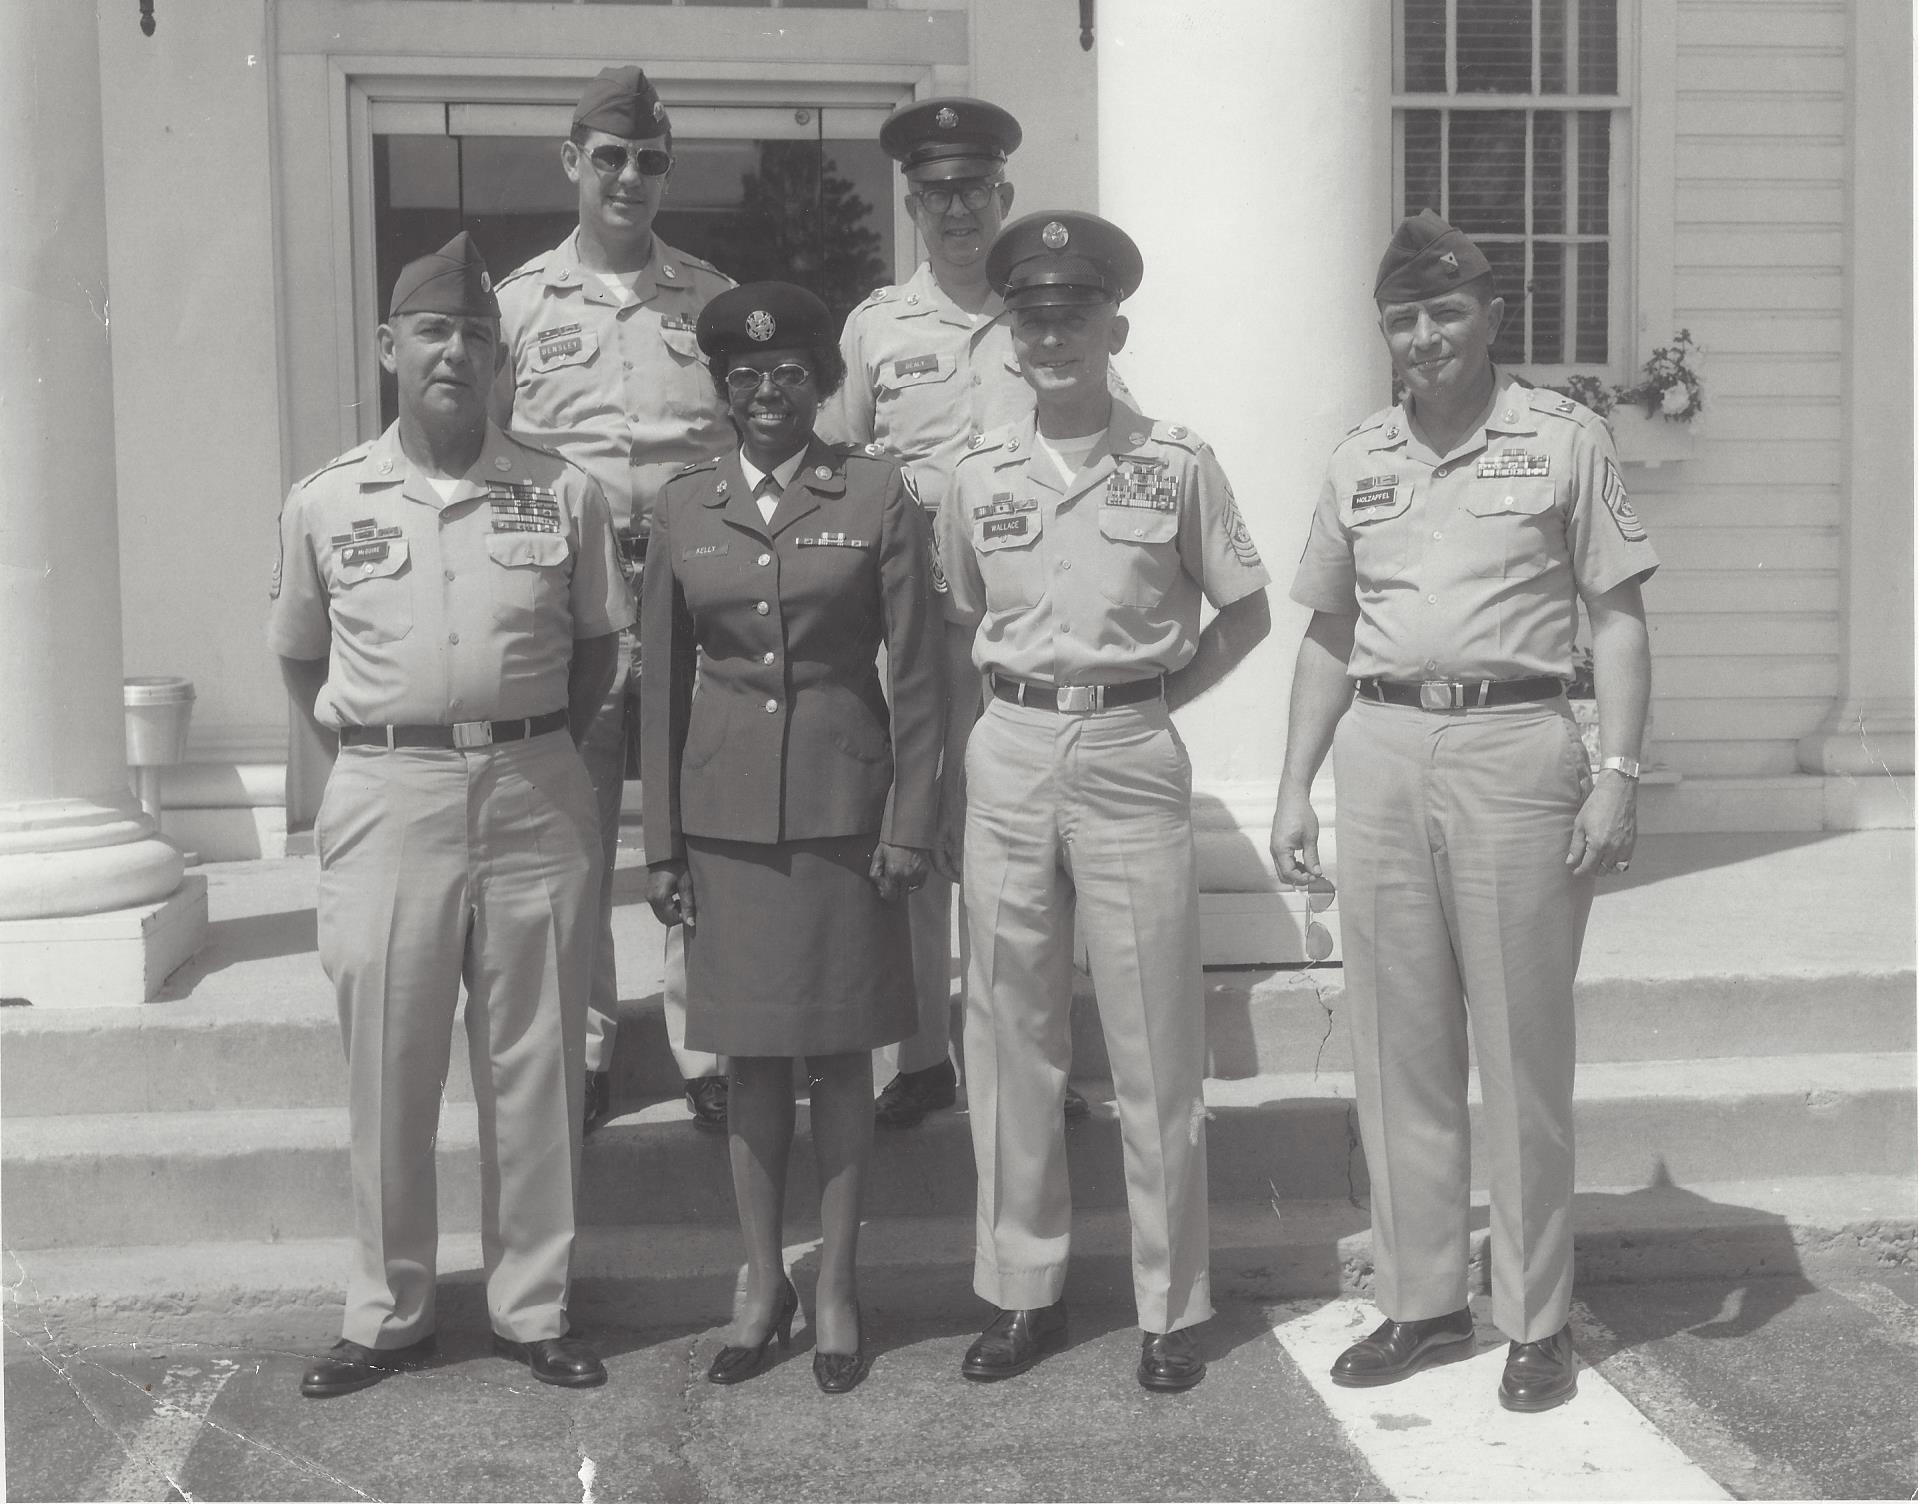 Command Sgt. Maj. Mildred C. Kelly